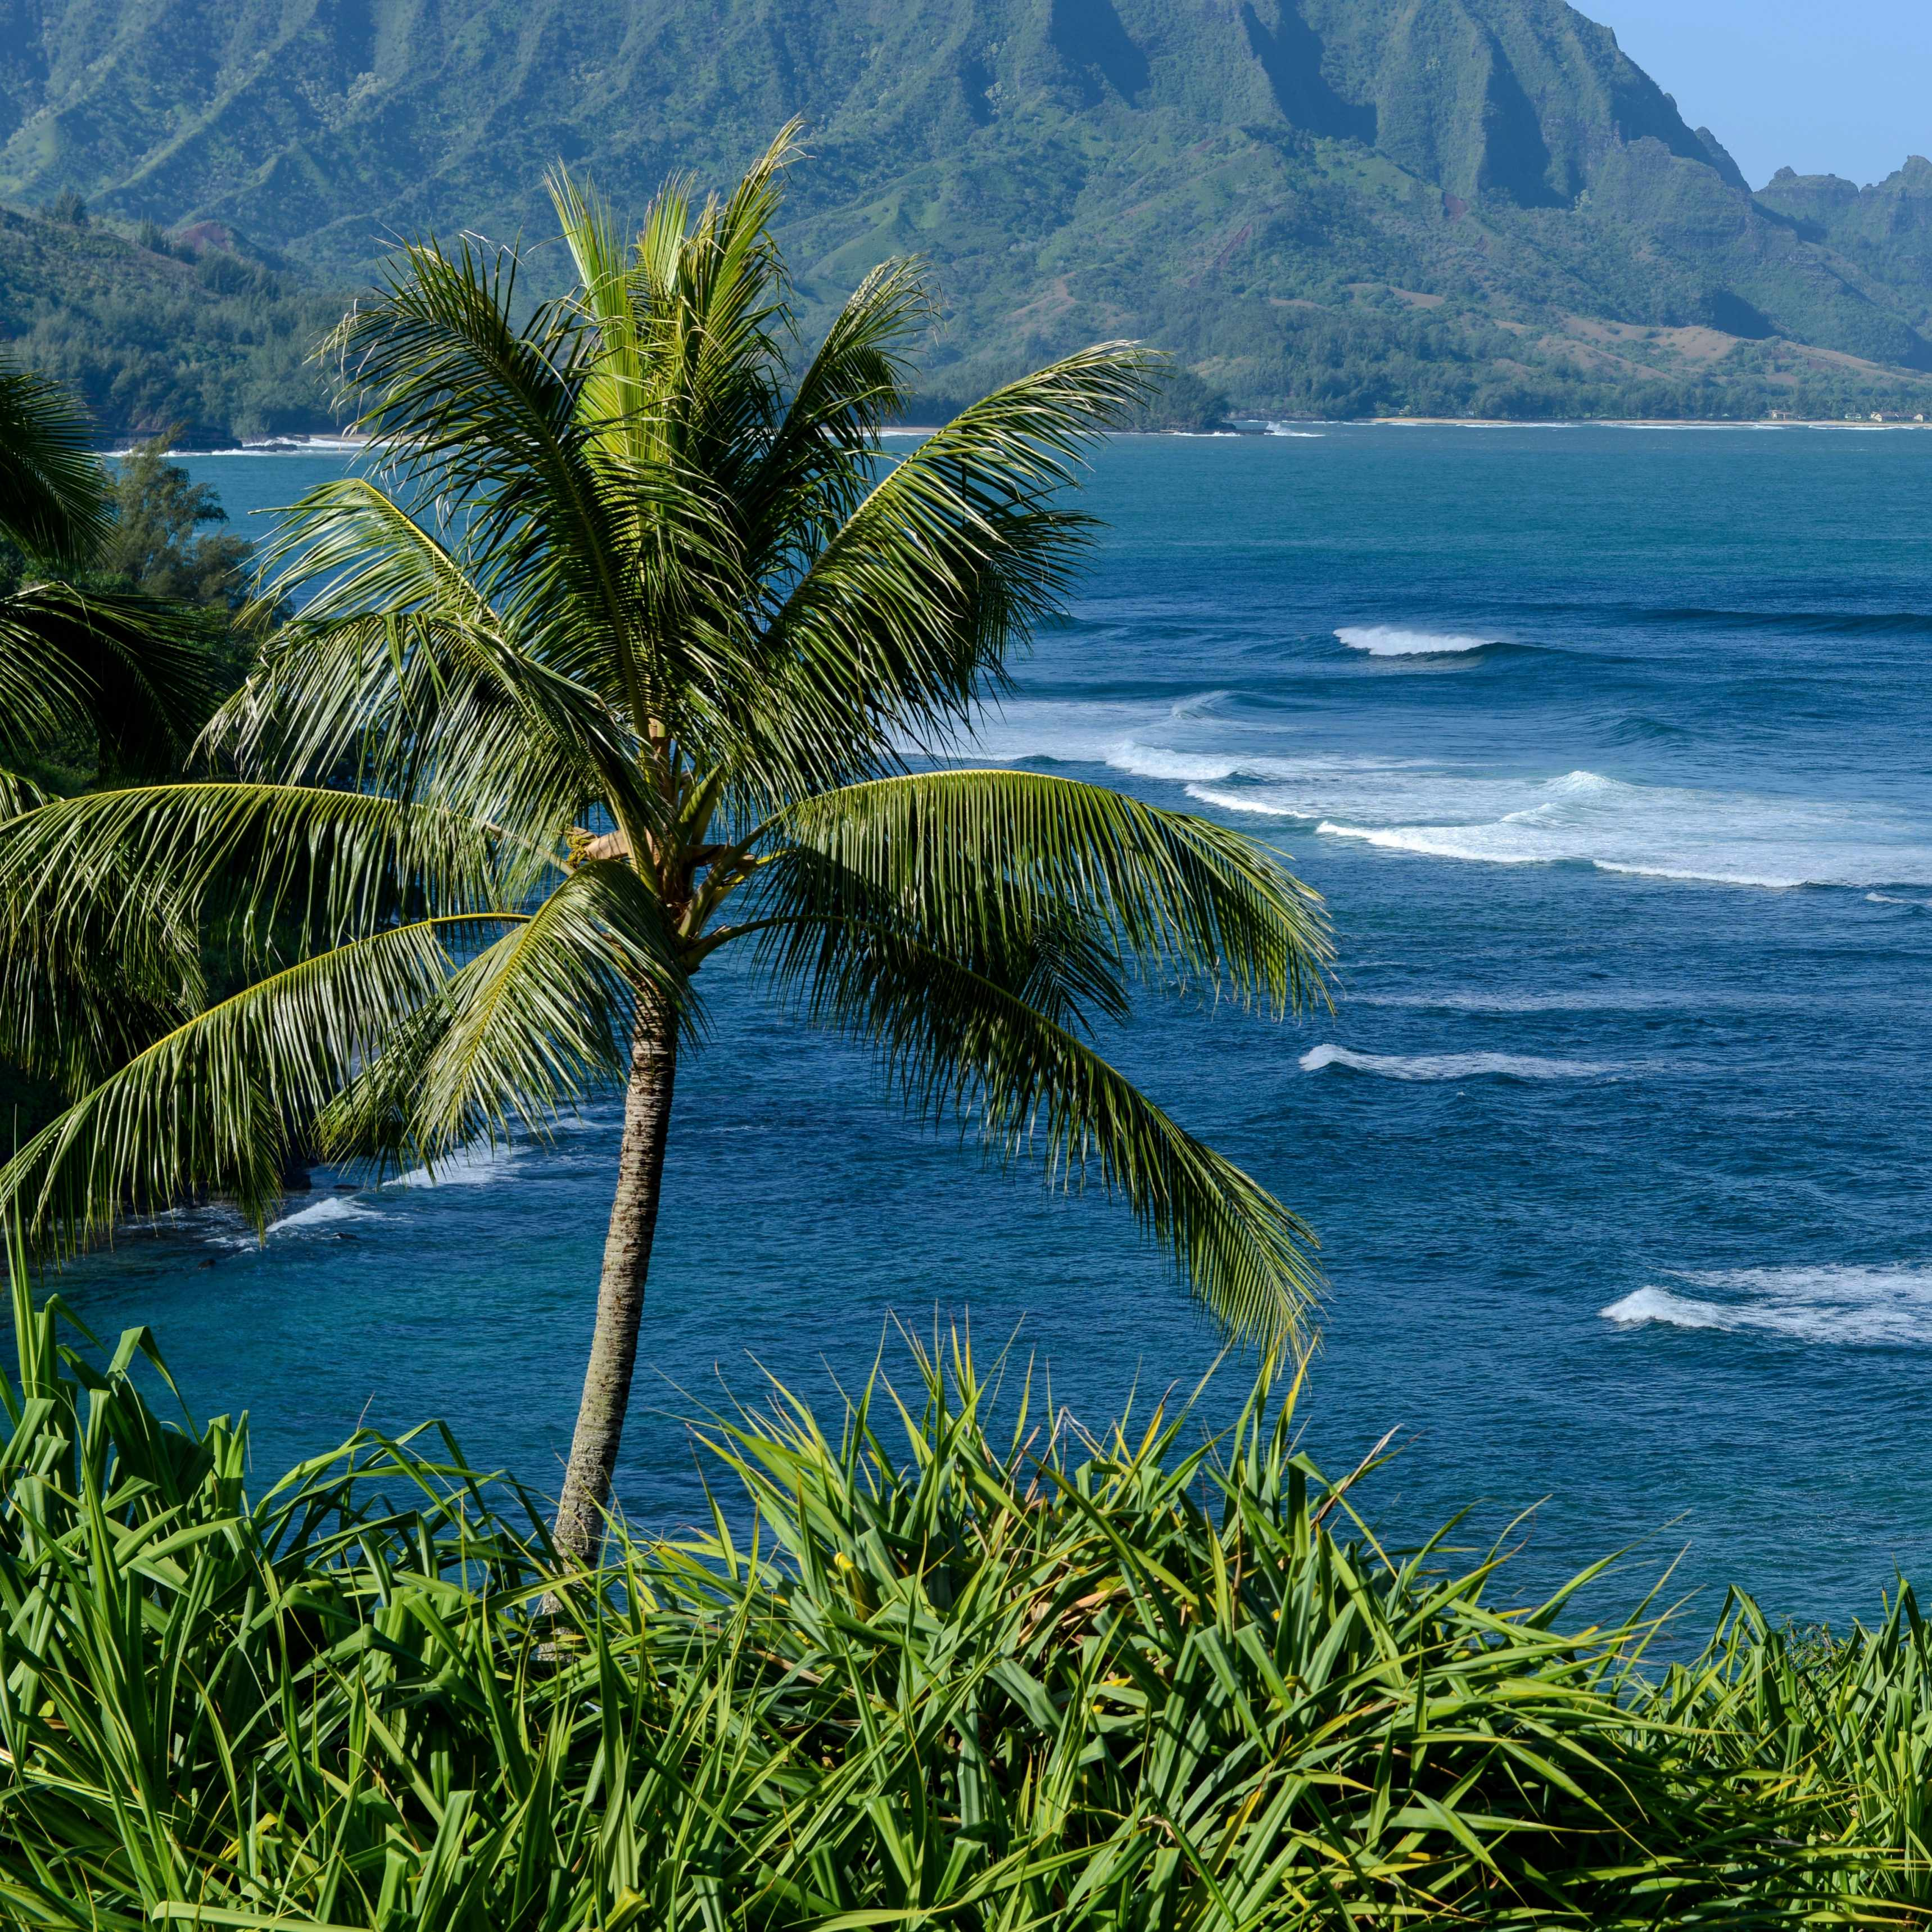 a beach picture of the ocean and mountains in Hawaii